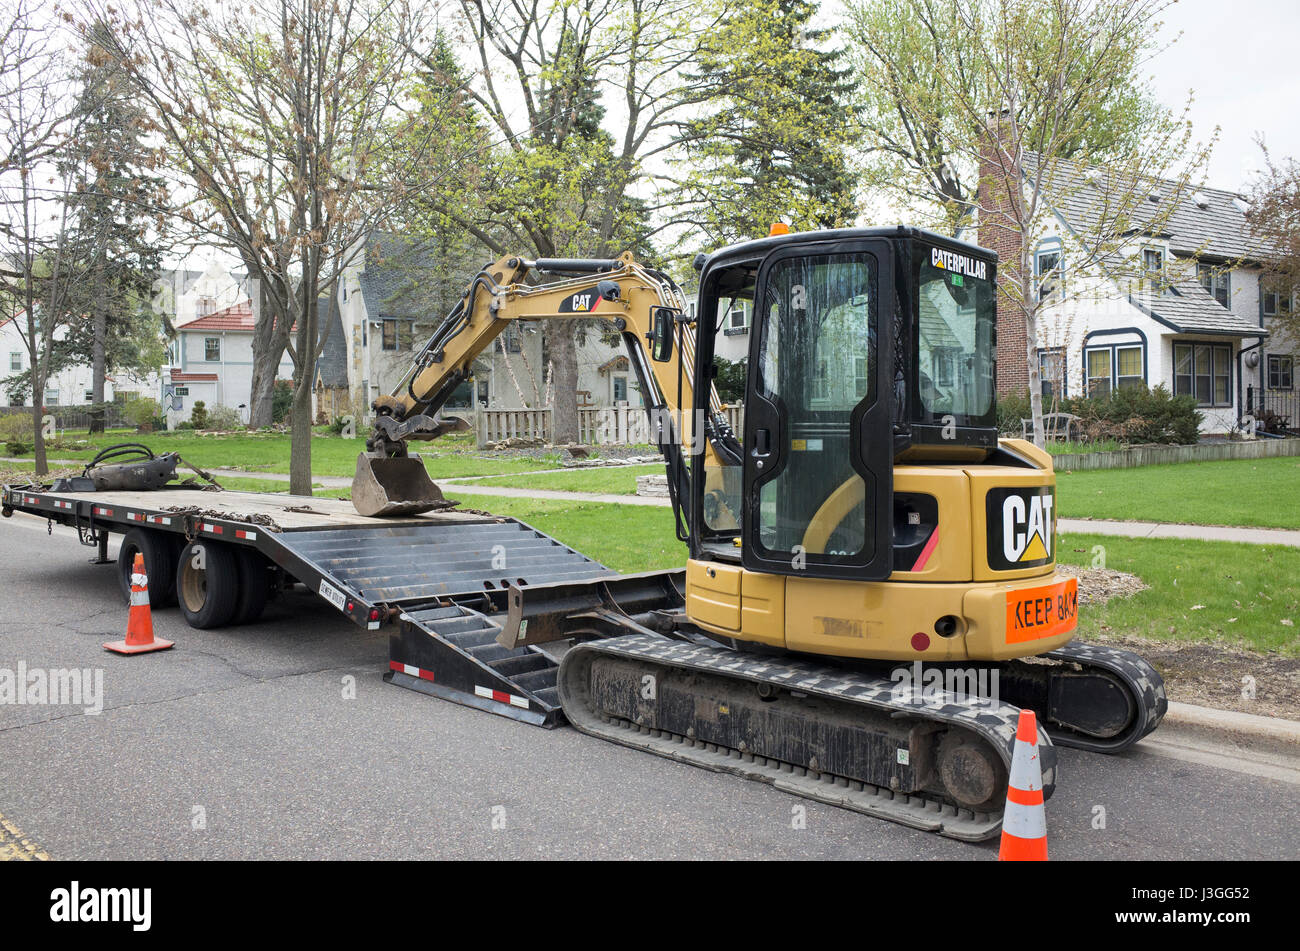 Front end loader driven by tank treads or continuous tracks ready to work on a residential neighborhood project. - Stock Image